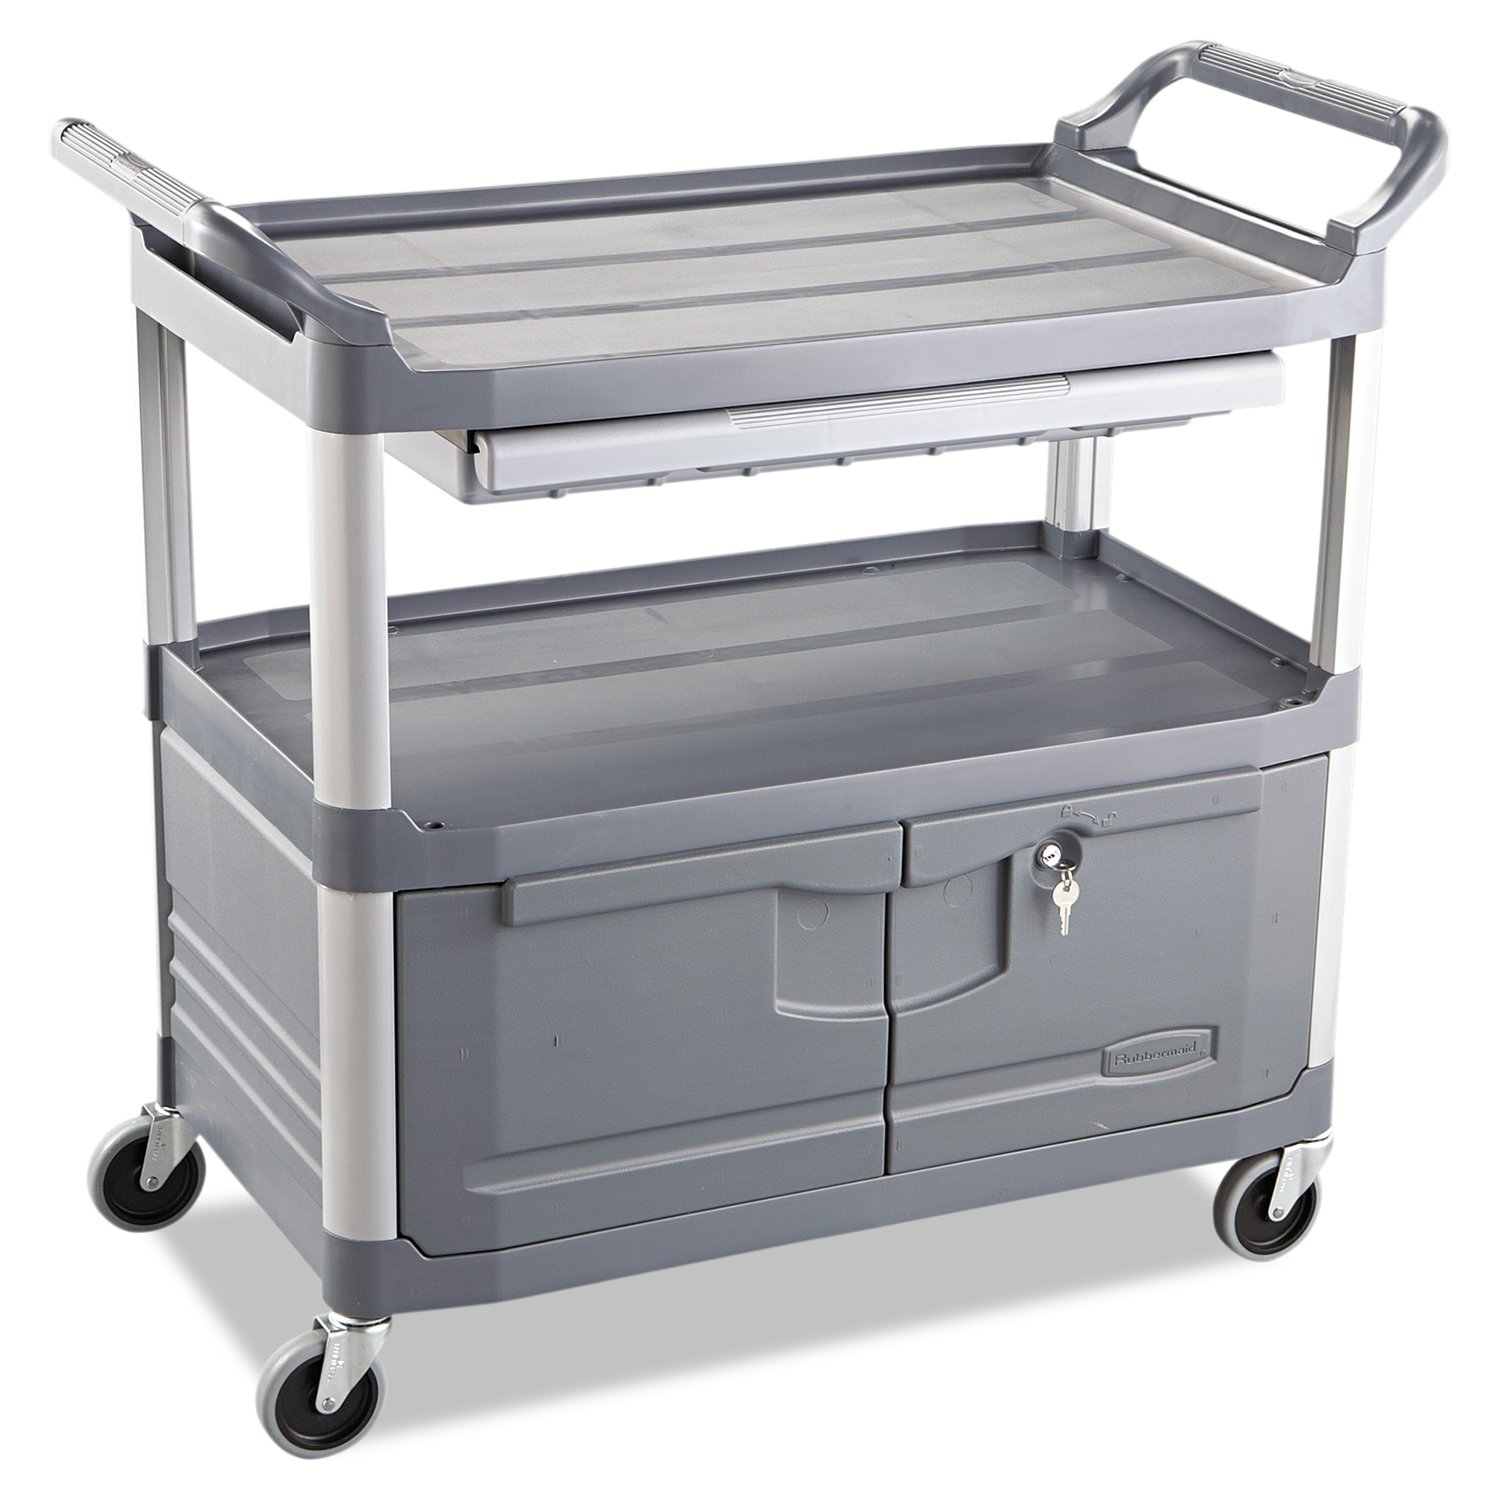 Rubbermaid Commercial RCP 4094 GRA Xtra Instrument Cart, 300 lb. Cap, Three-Shelf, 20'' Width x 40-5/8'' Depth x 37-4/5'' Height, Gray by Rubbermaid Commercial